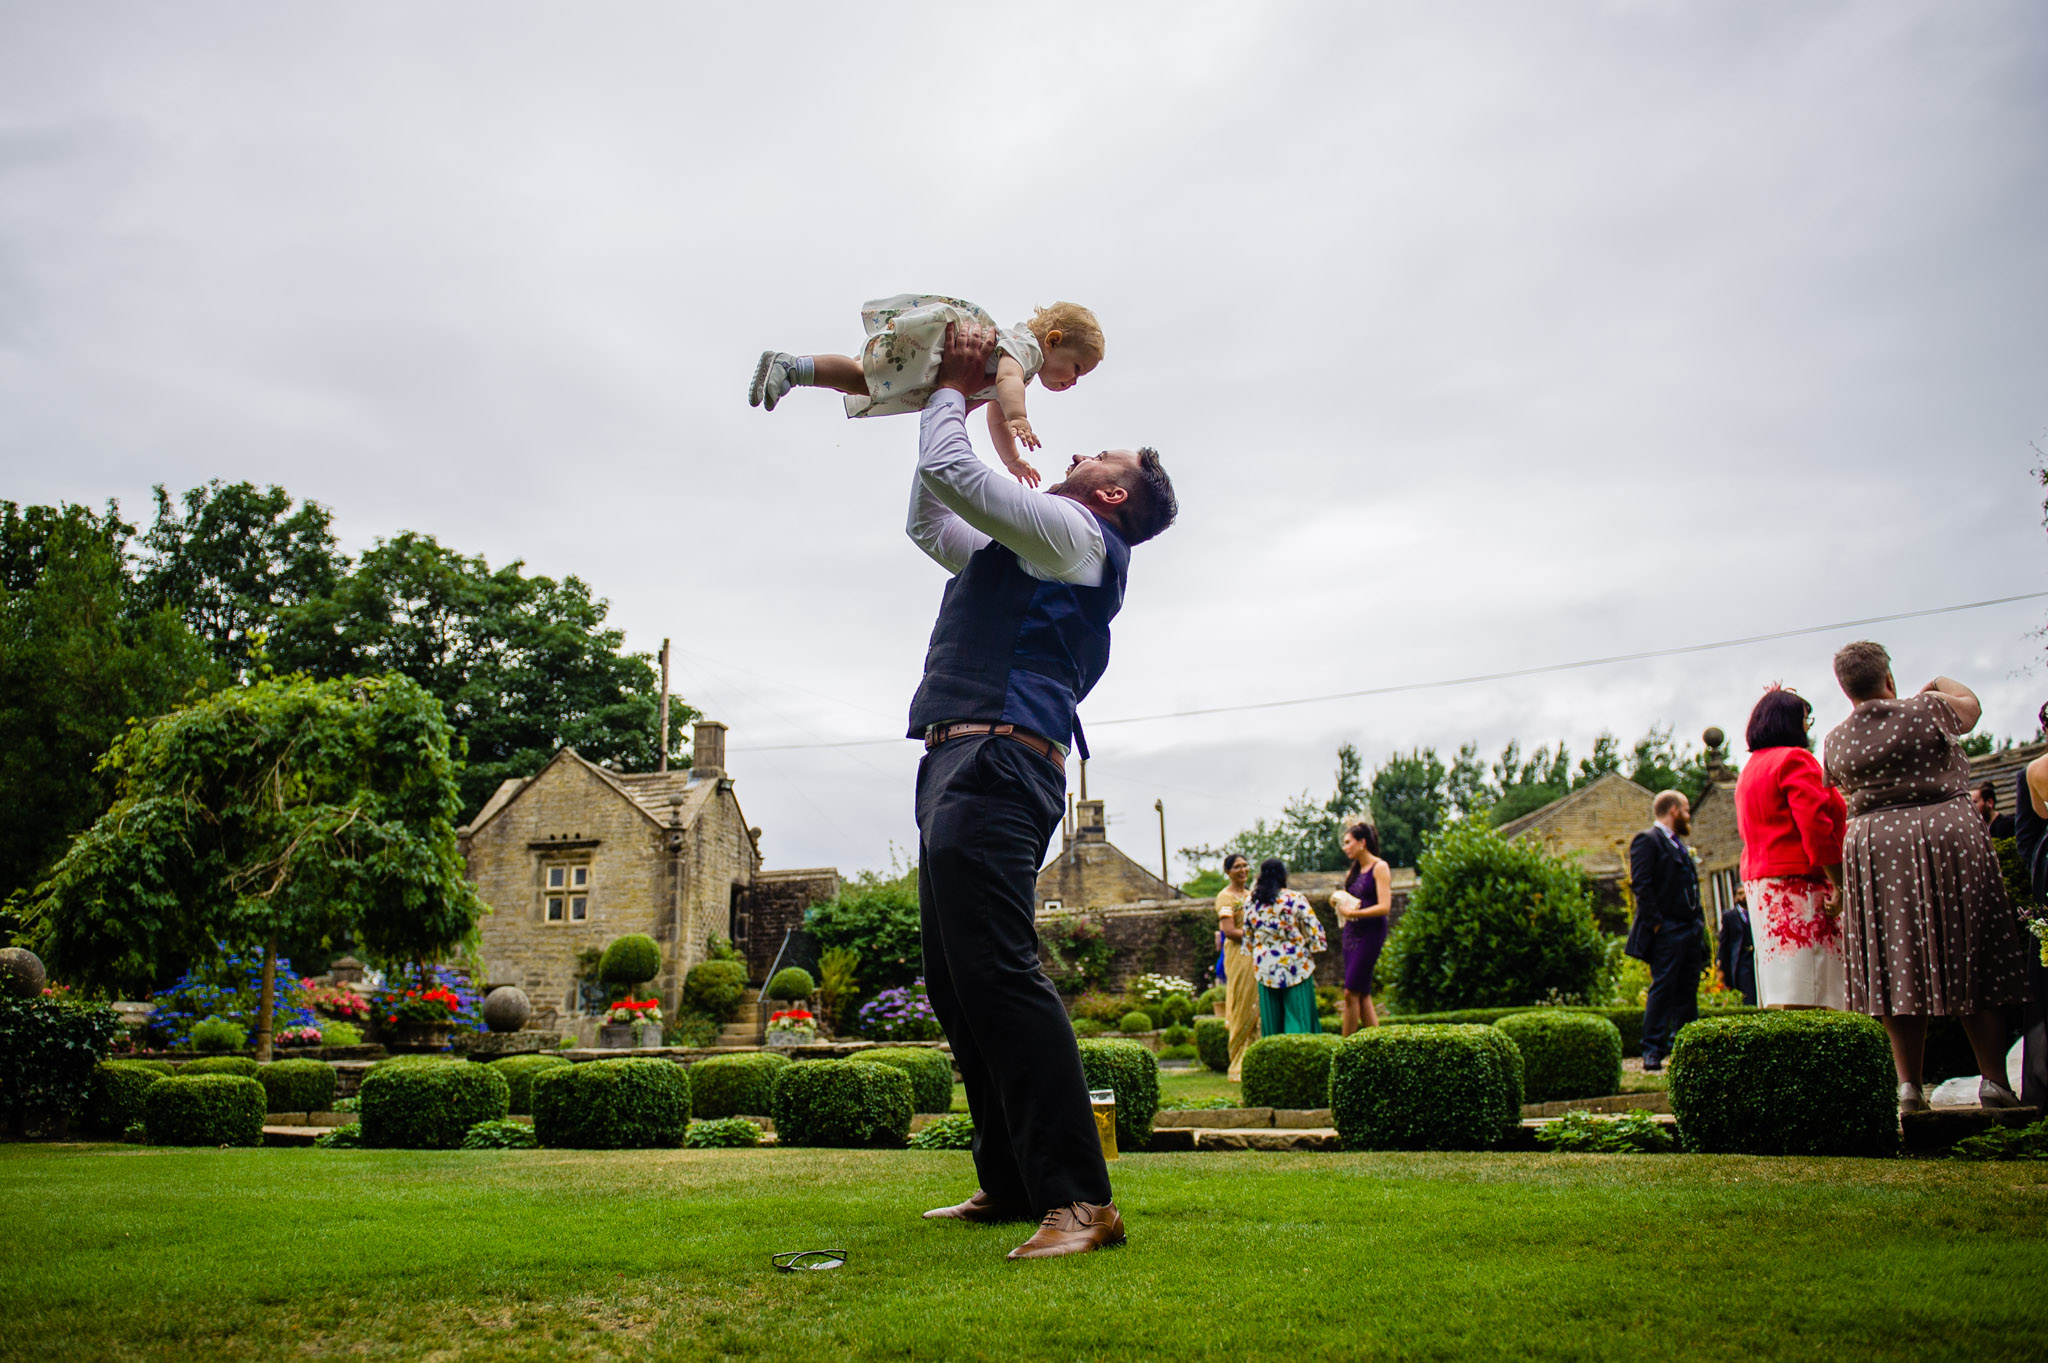 Wedding guest swings their child round in the air